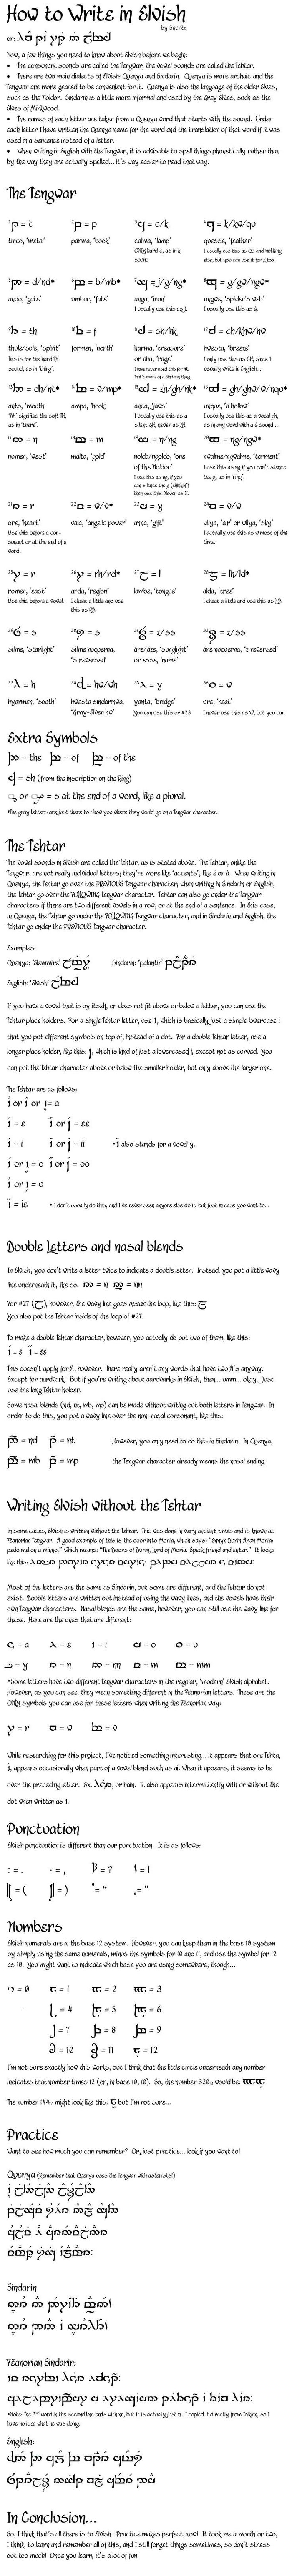 """TUTORIAL: How to write in Elvish.. This is the most detailed and thorough I've ever seen. Also, check out a lovely book called """"The Languages of Tolkien's Middle Earth"""". It explains elvish (Sindarian and Quenya), Dwarvish, and others. Written by Ruth S. Noel."""